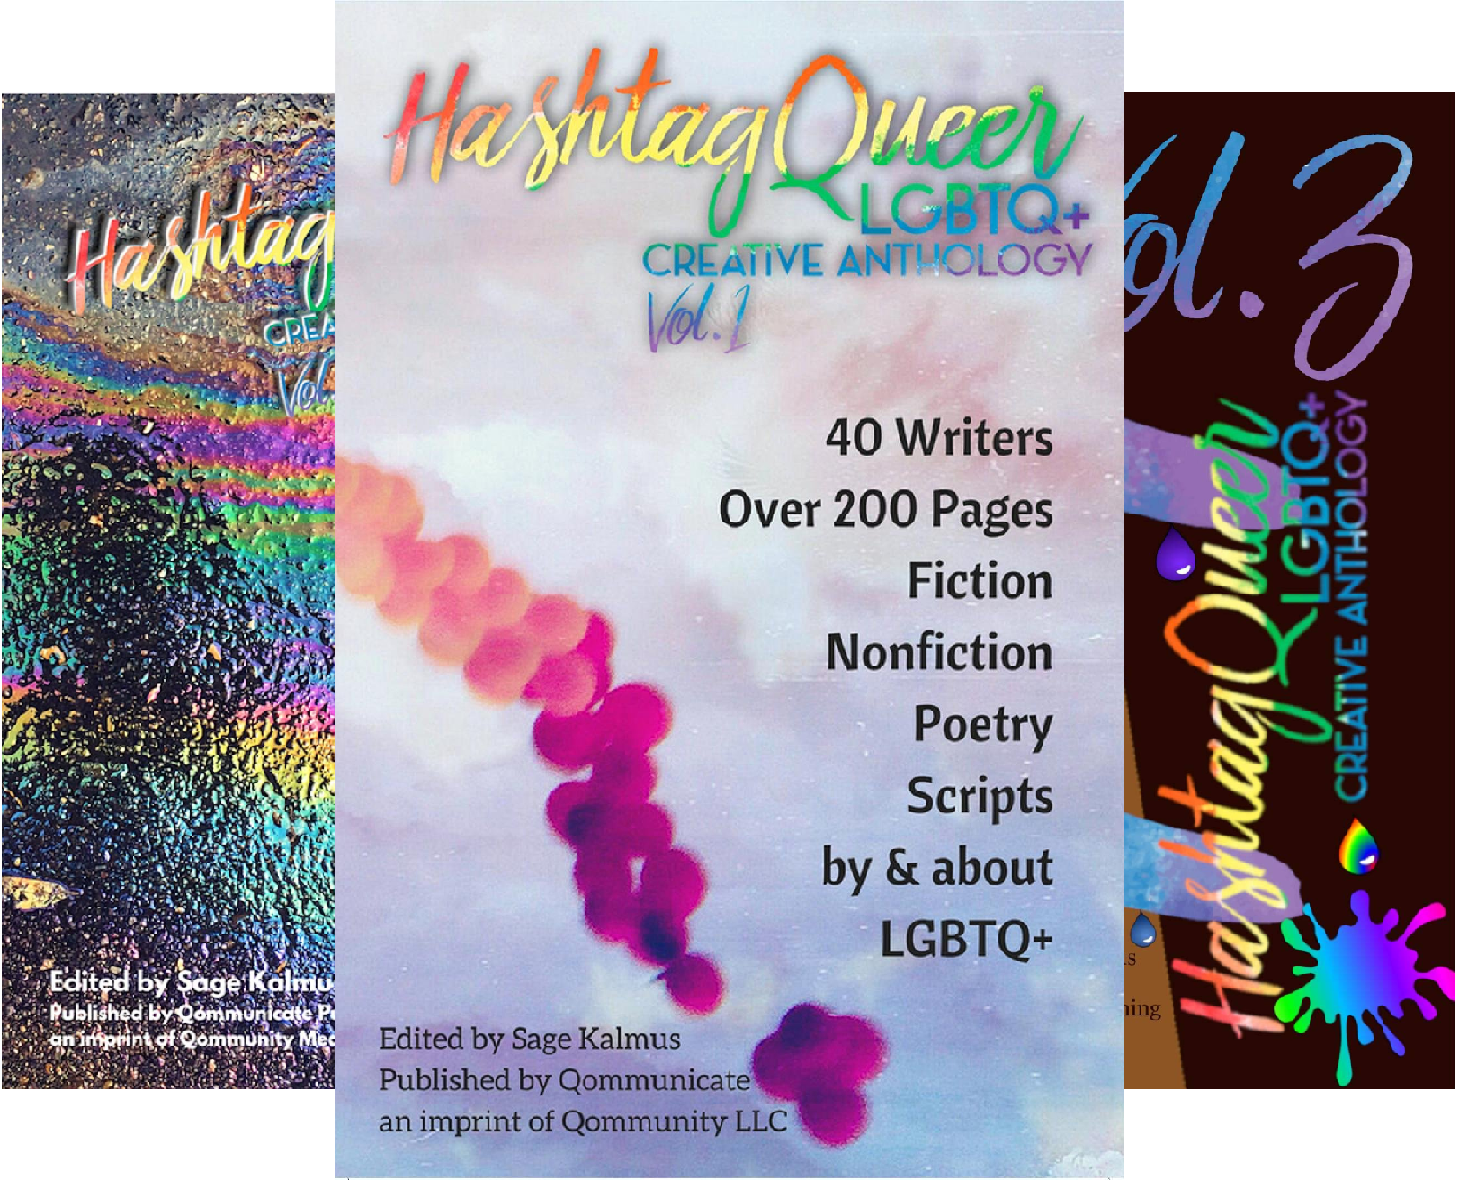 Hashtag Queer: LGBTQ+ Creative Anthology (3 Book Series)